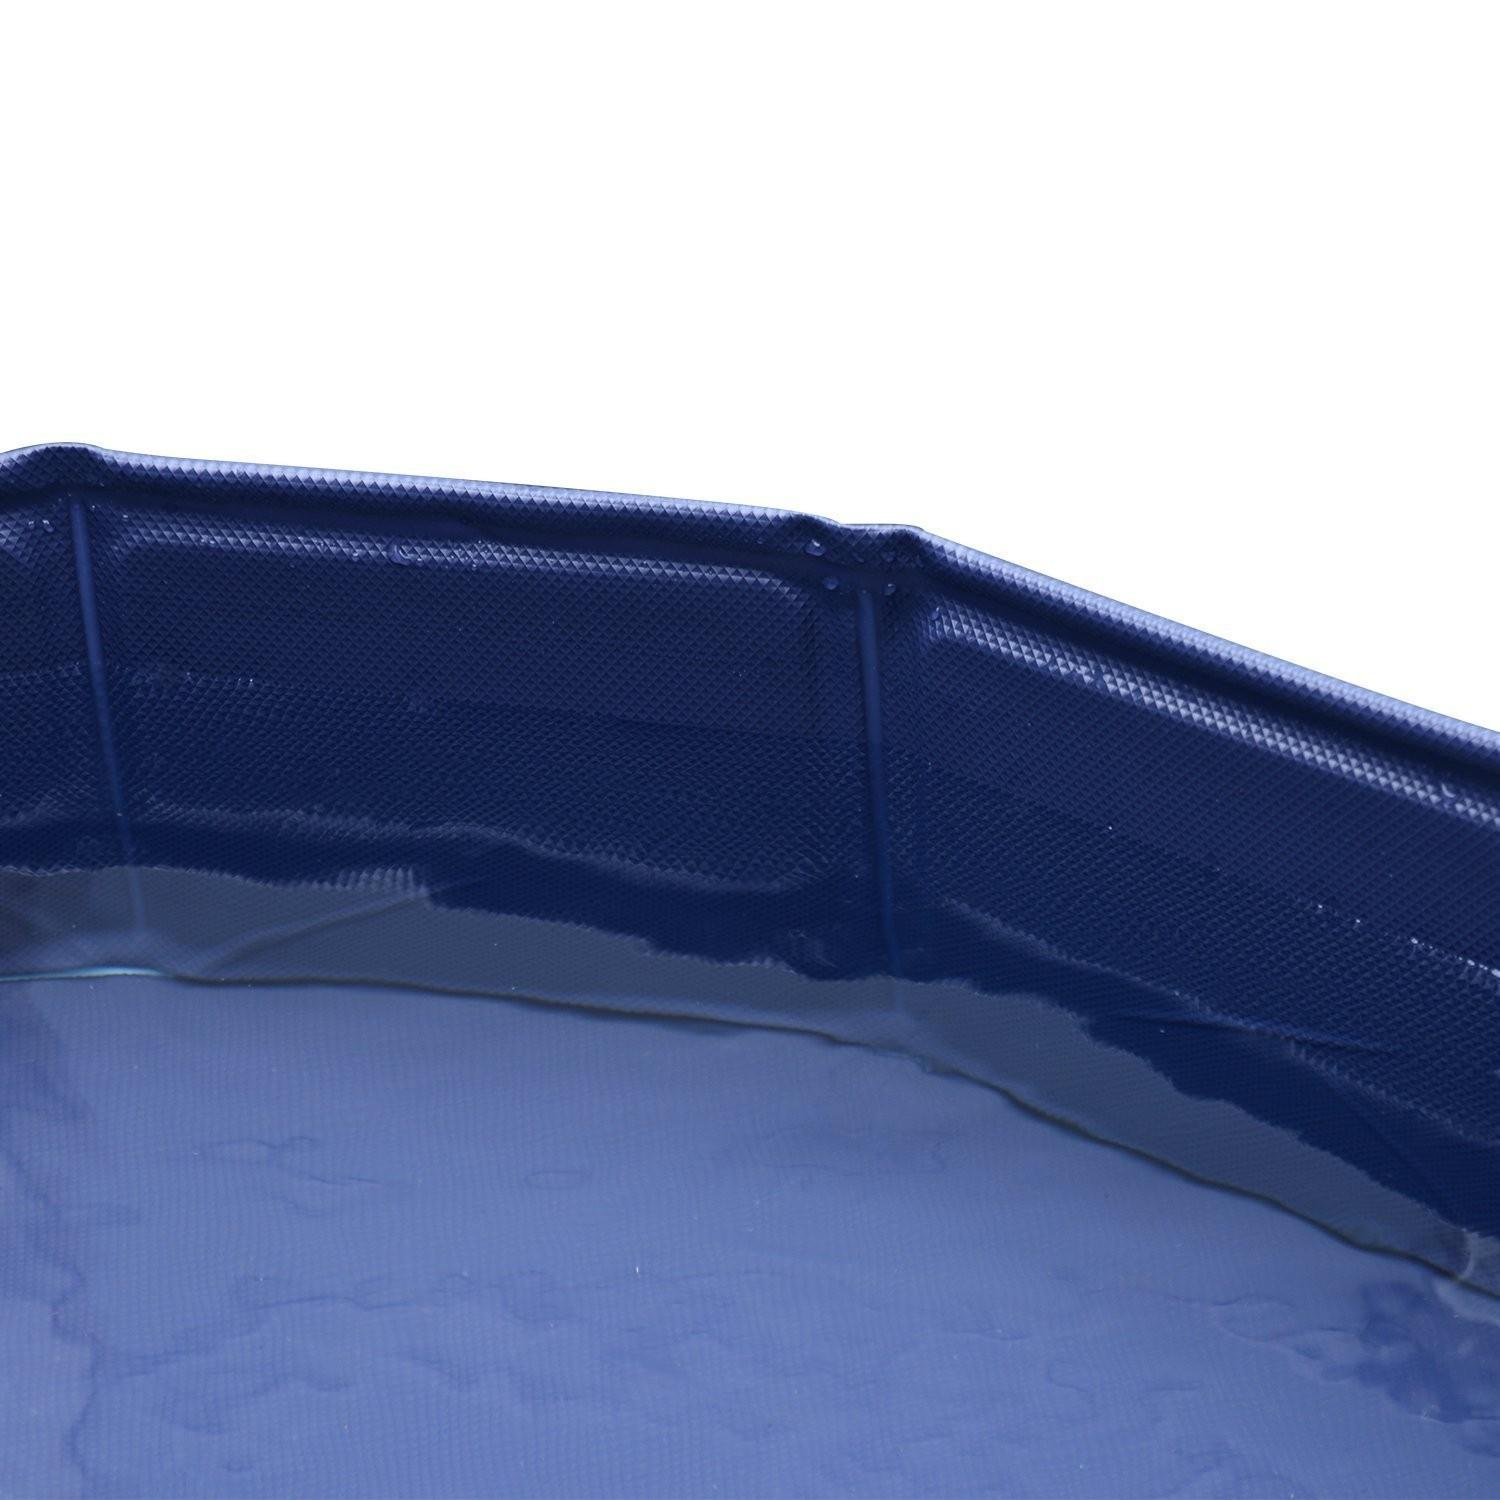 Piscina per Animali Domestici in Plastica Bordo Stabile Ø160x30 cm Rossa Riotti